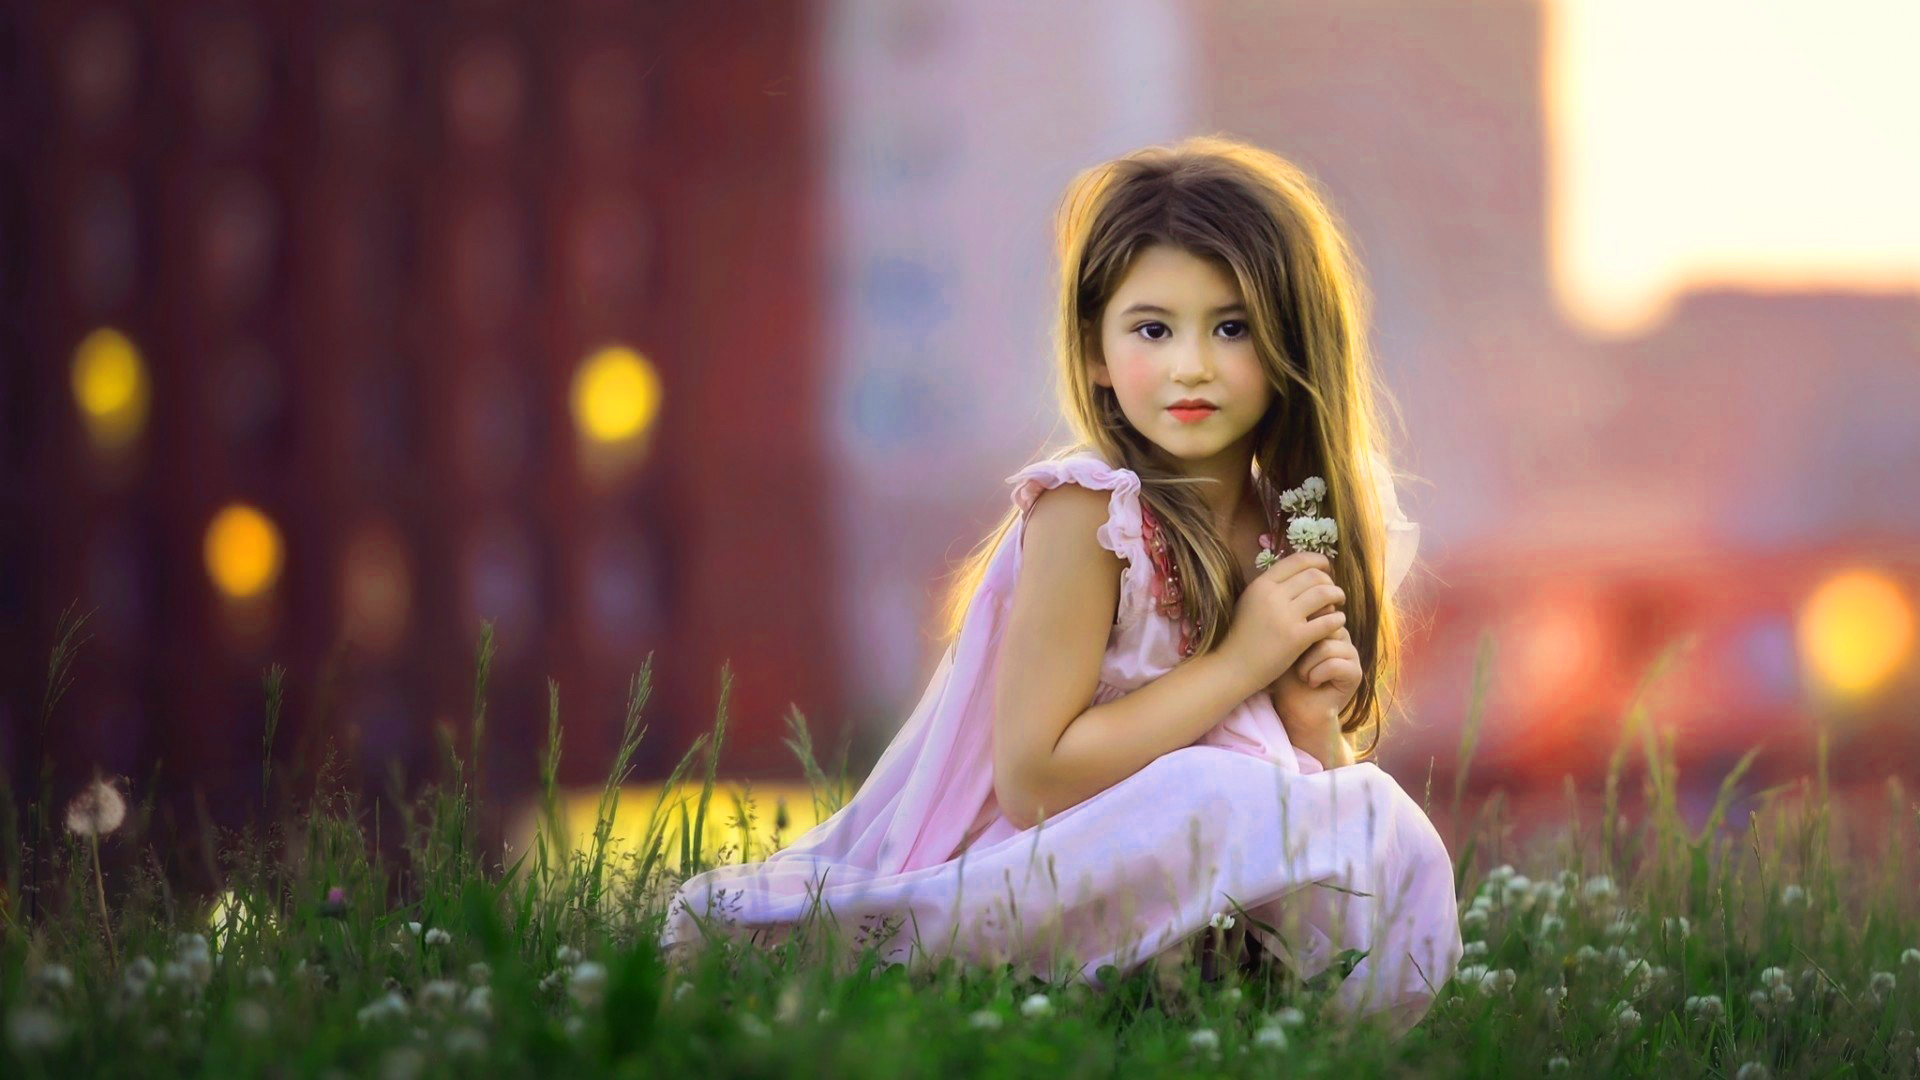 Indian Beautiful Girl Images Wallpaper Pics Hd Download - Baby Girl , HD Wallpaper & Backgrounds